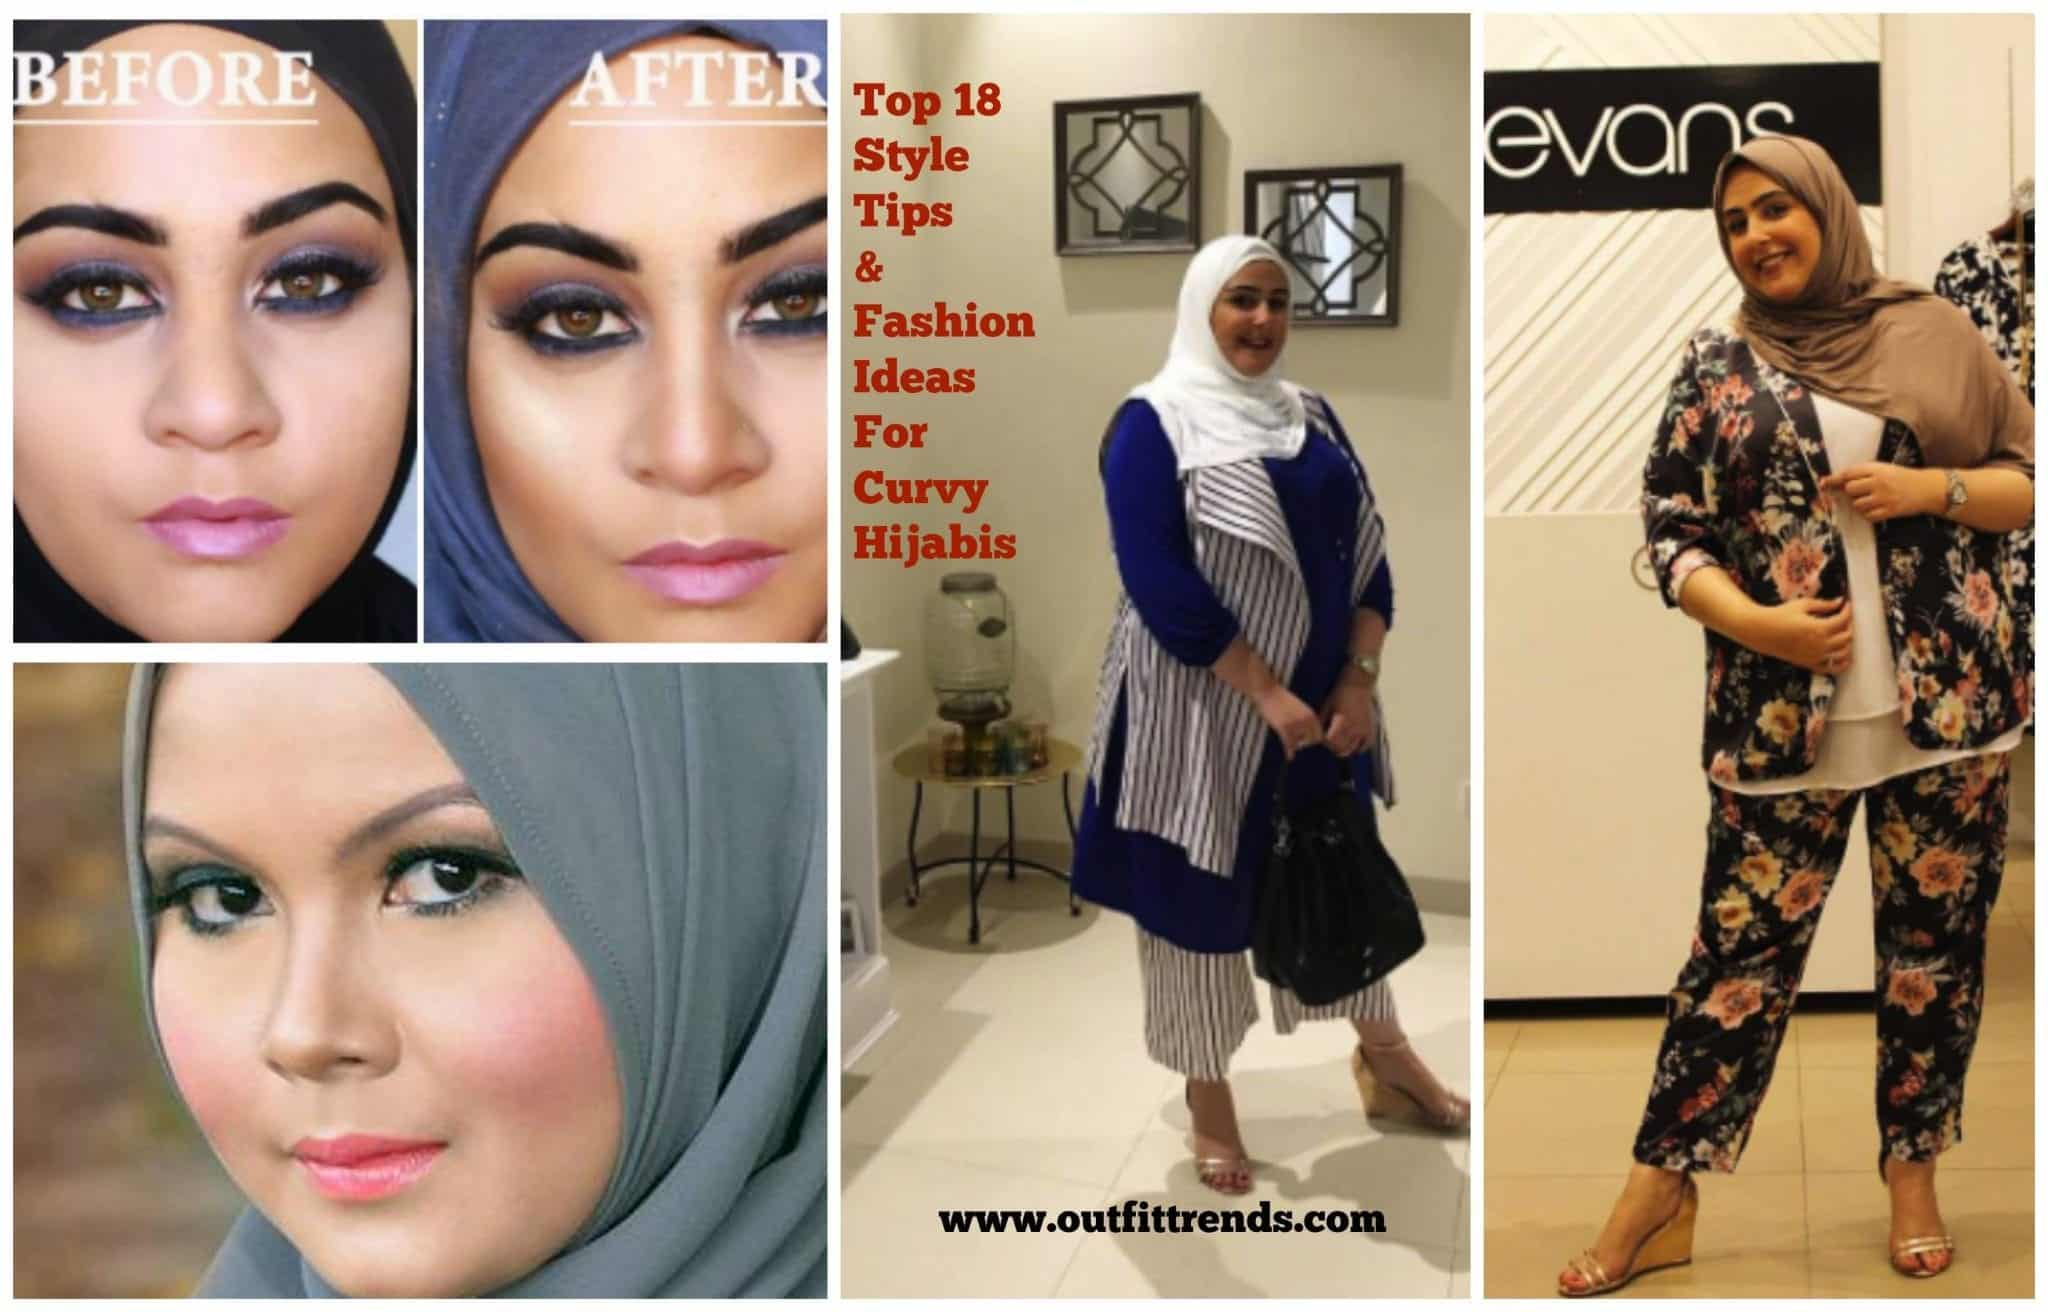 fashion-ideas-for-curvy-women 18 Popular Hijab Fashion Ideas for Plus Size Women